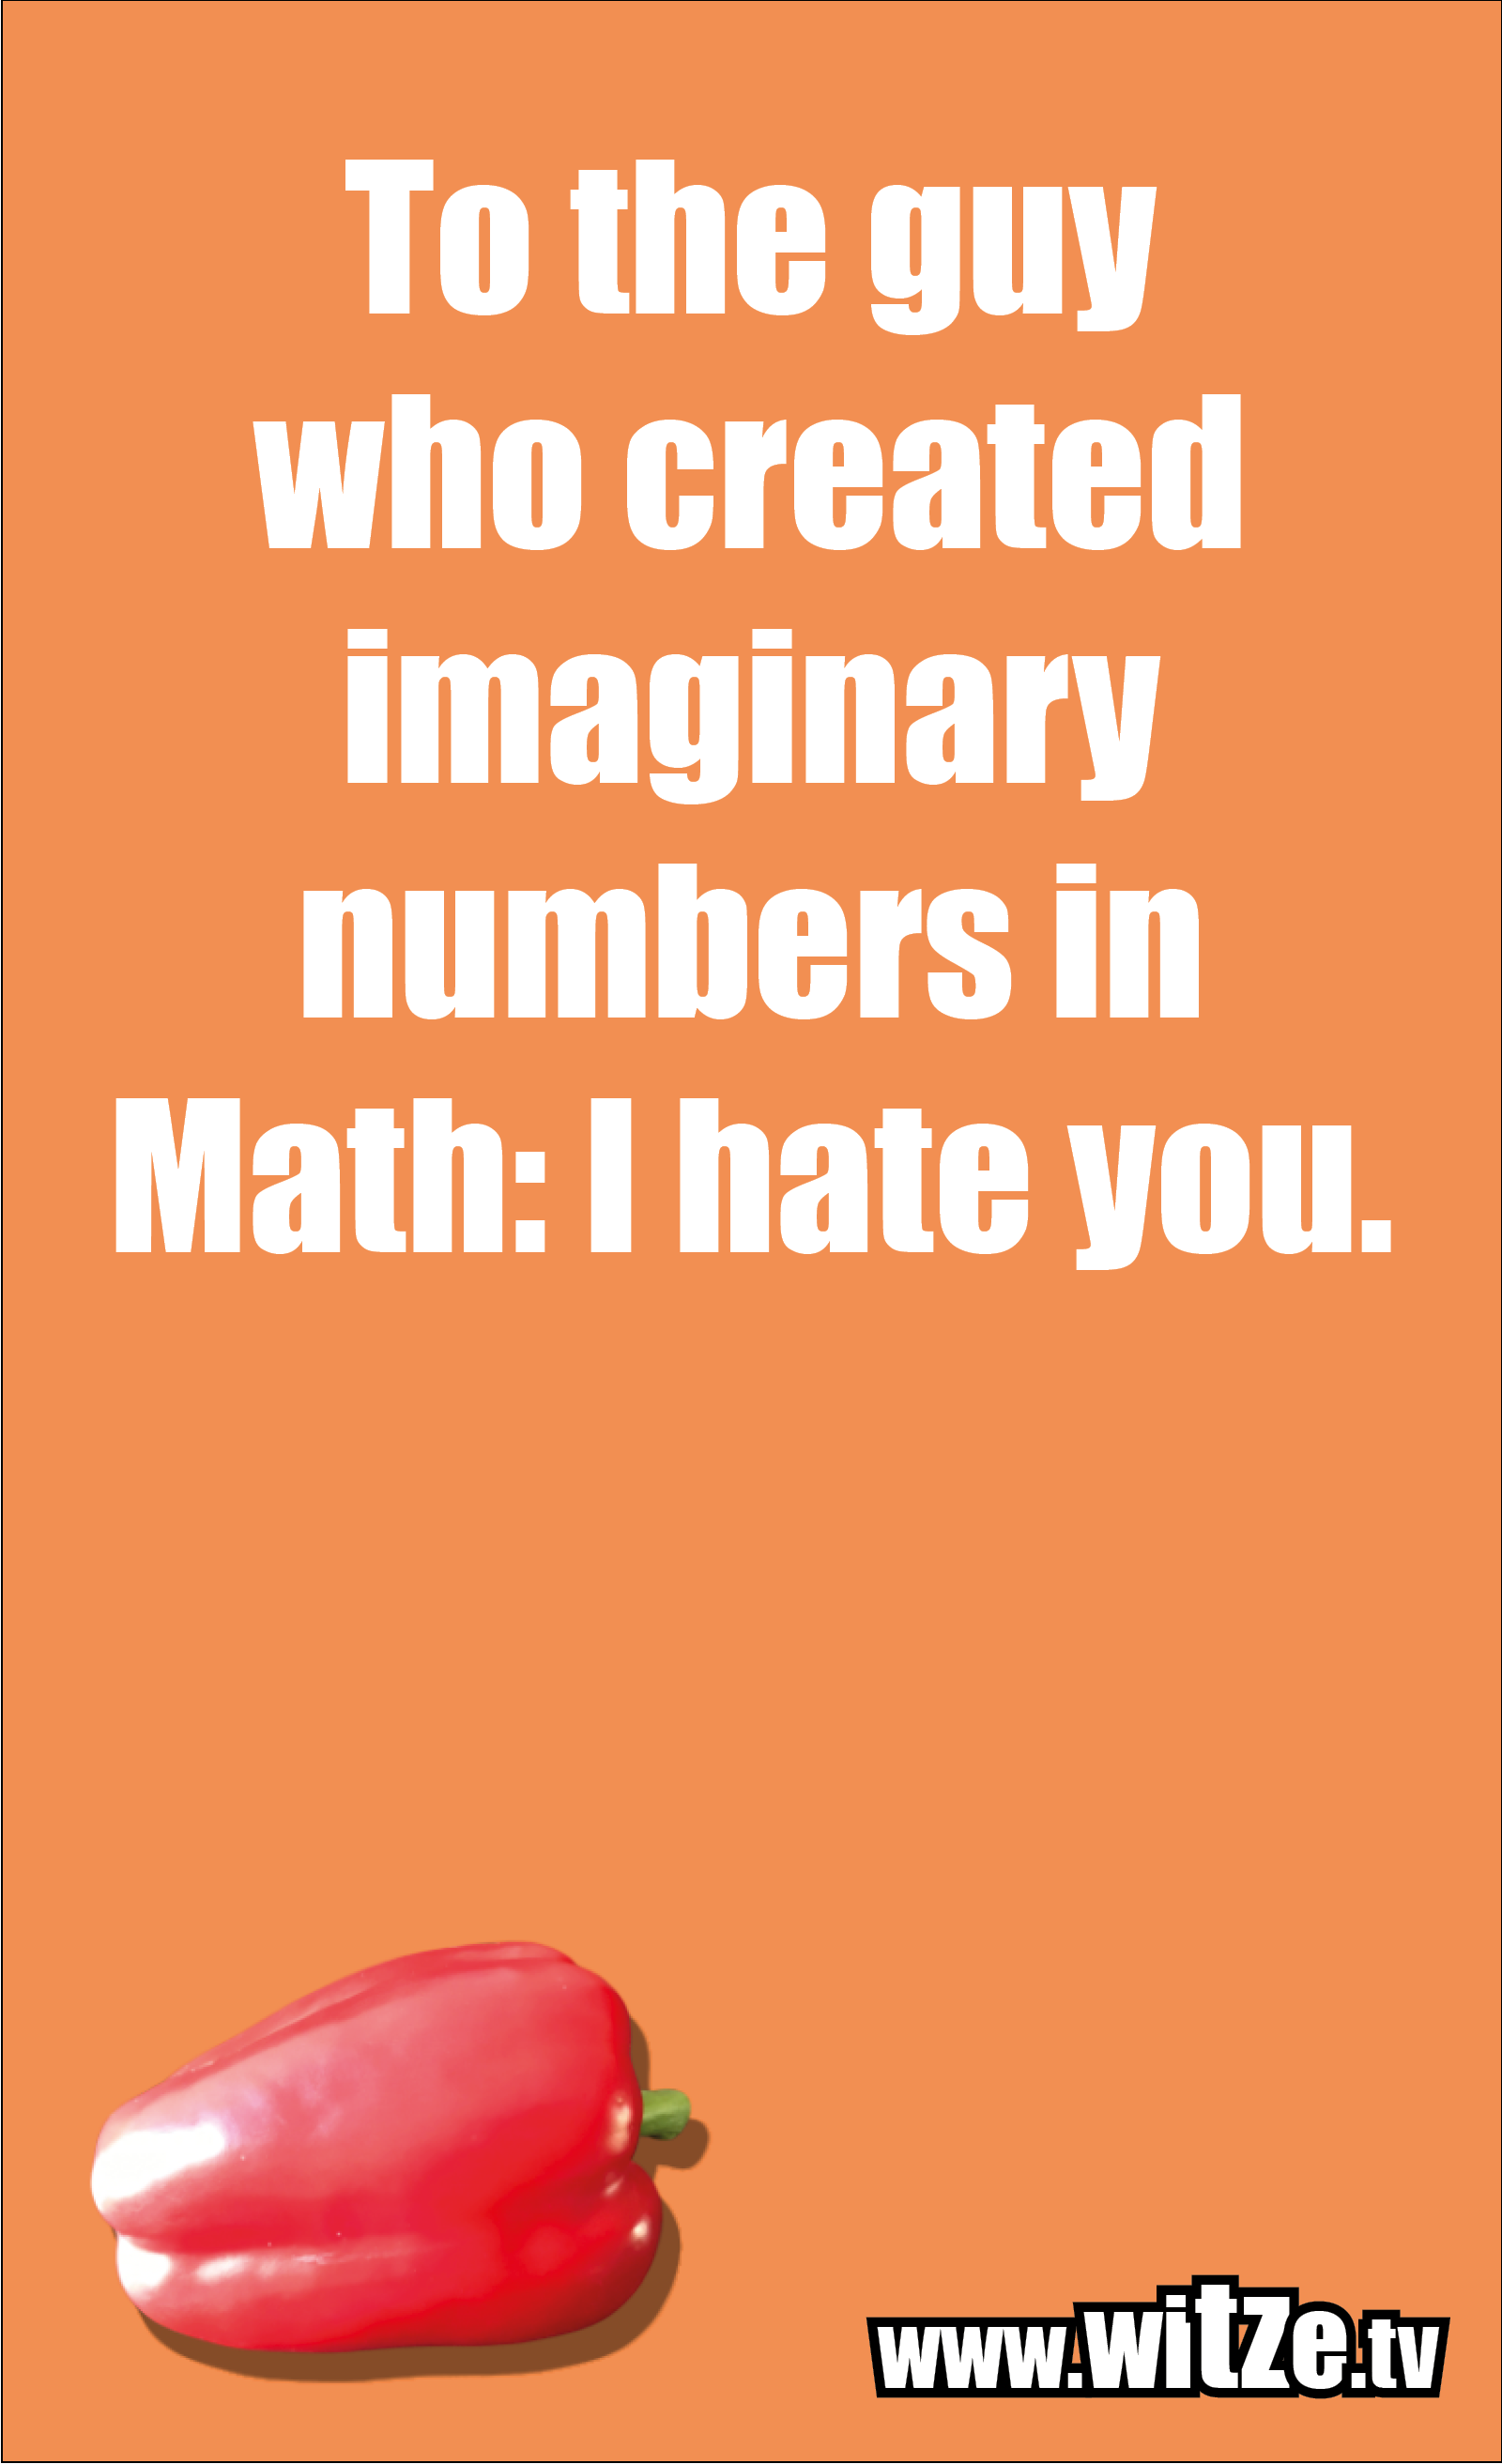 Funny sayings… To the guy who created imaginary numbers in Math: I hate you.